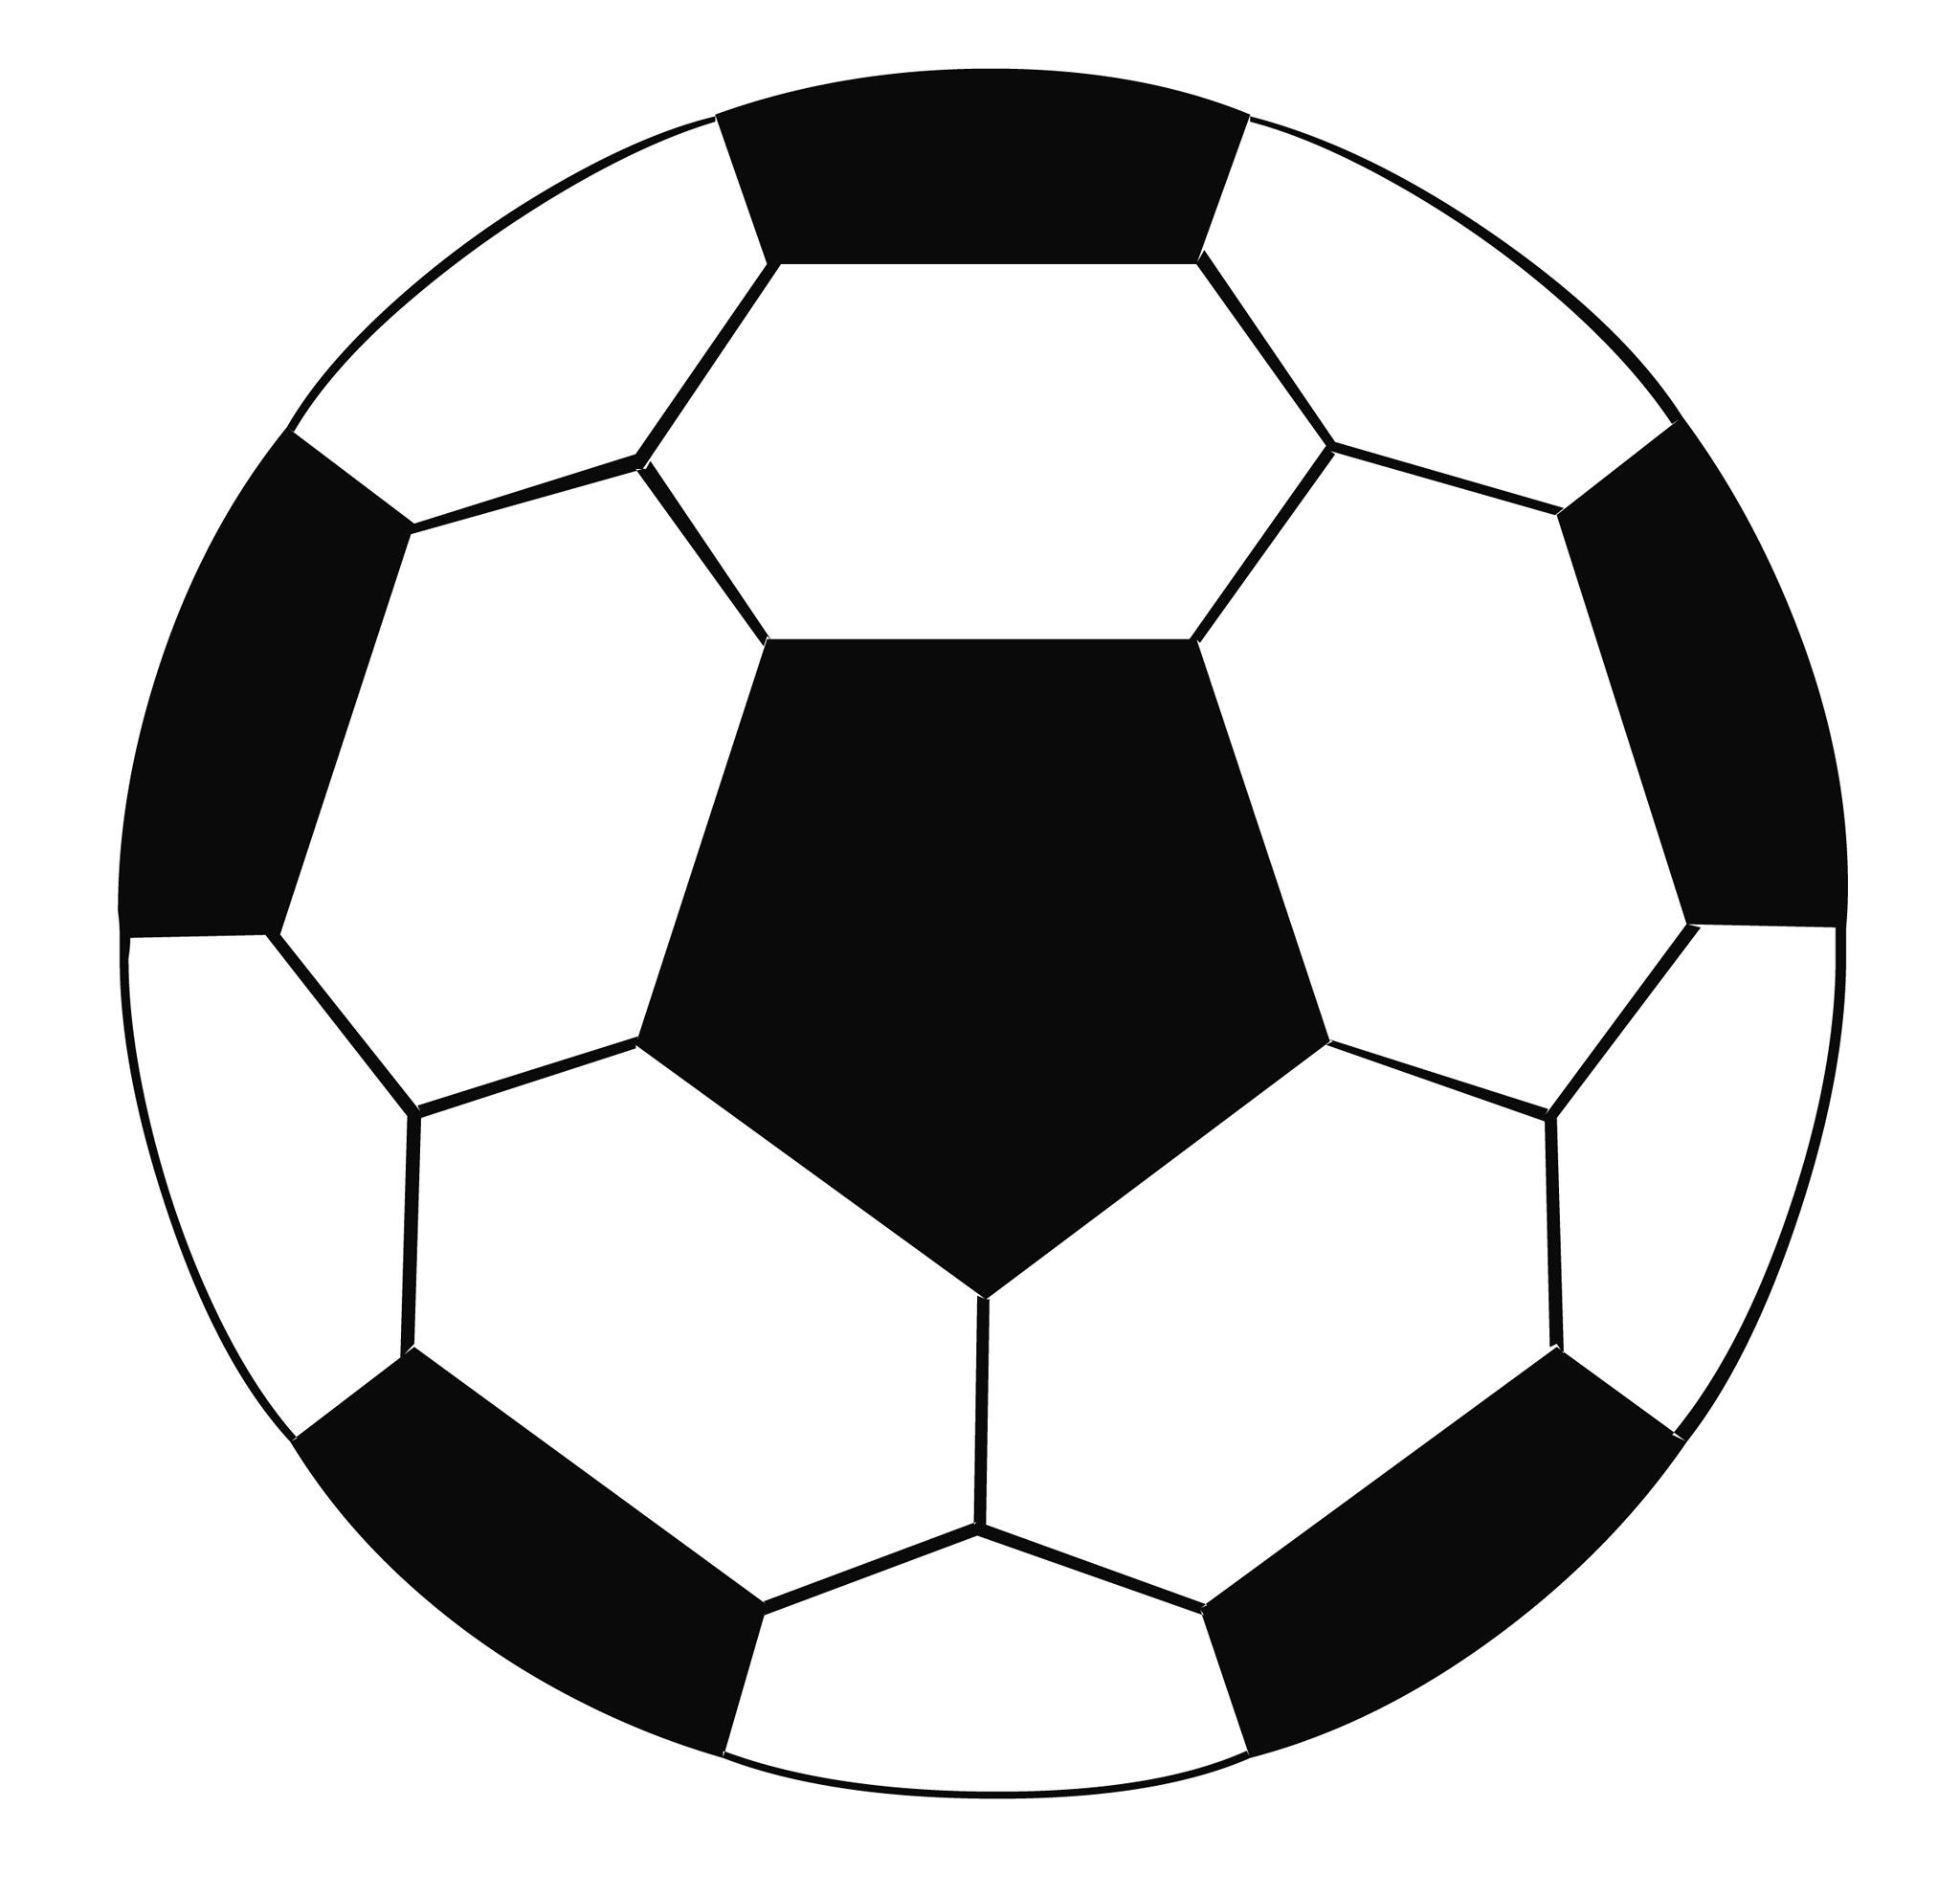 soccer ball clip art free large images pinteres rh pinterest com clipart of a football goal clip art of a football field lateral